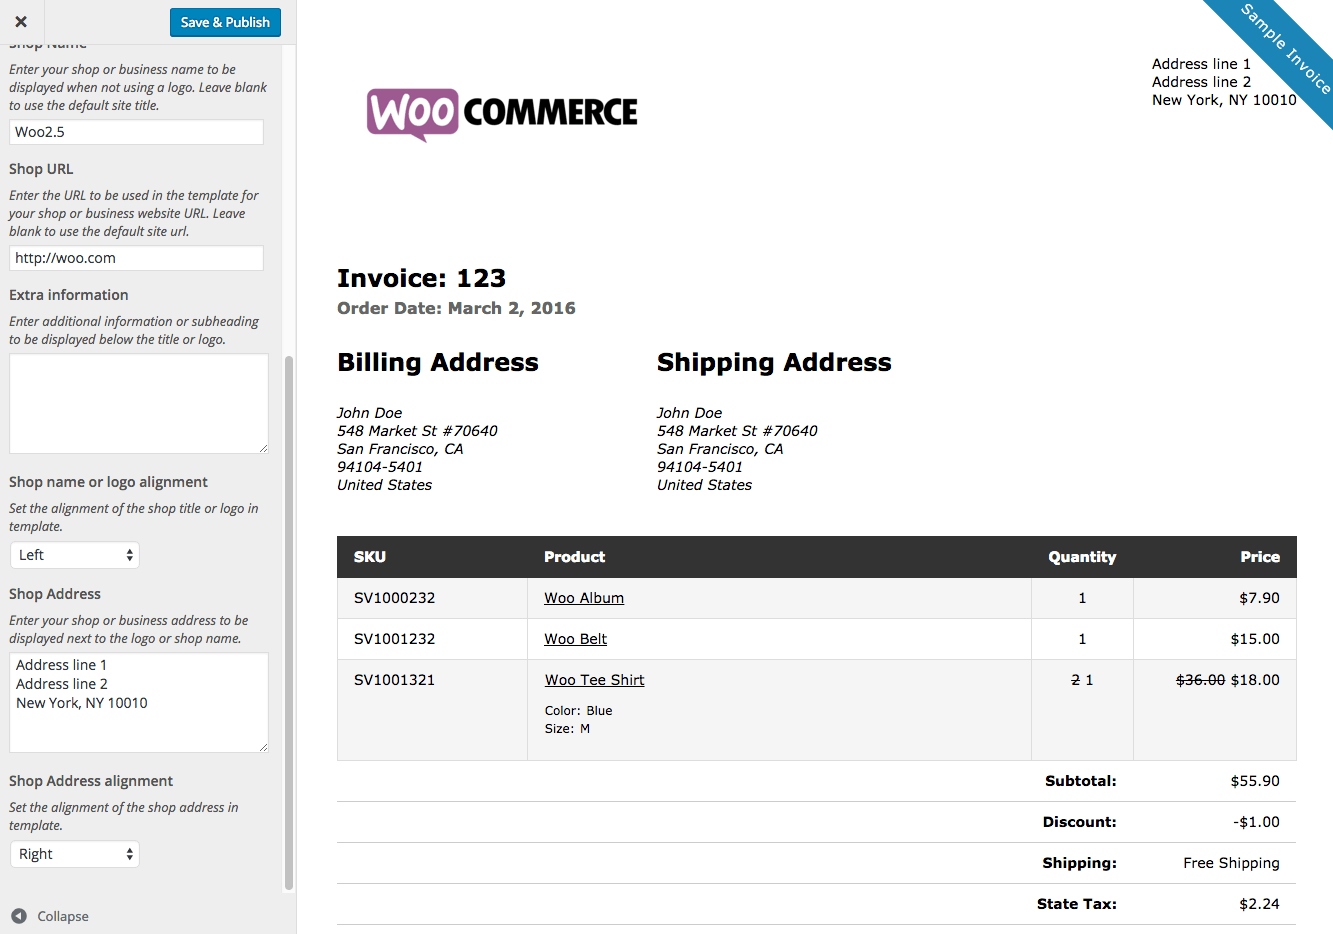 Floobydustus  Winning Woocommerce Print Invoices Amp Packing Lists  Woocommerce Docs With Magnificent Woocommerce Print Invoices  Packing Lists Customizer With Amazing Express Invoice Download Also Invoice Payable To In Addition Online Invoice Generator Free And Definition Of Sales Invoice As Well As Proforma Invoice Sample Word Additionally How To Do Invoicing From Docswoocommercecom With Floobydustus  Magnificent Woocommerce Print Invoices Amp Packing Lists  Woocommerce Docs With Amazing Woocommerce Print Invoices  Packing Lists Customizer And Winning Express Invoice Download Also Invoice Payable To In Addition Online Invoice Generator Free From Docswoocommercecom